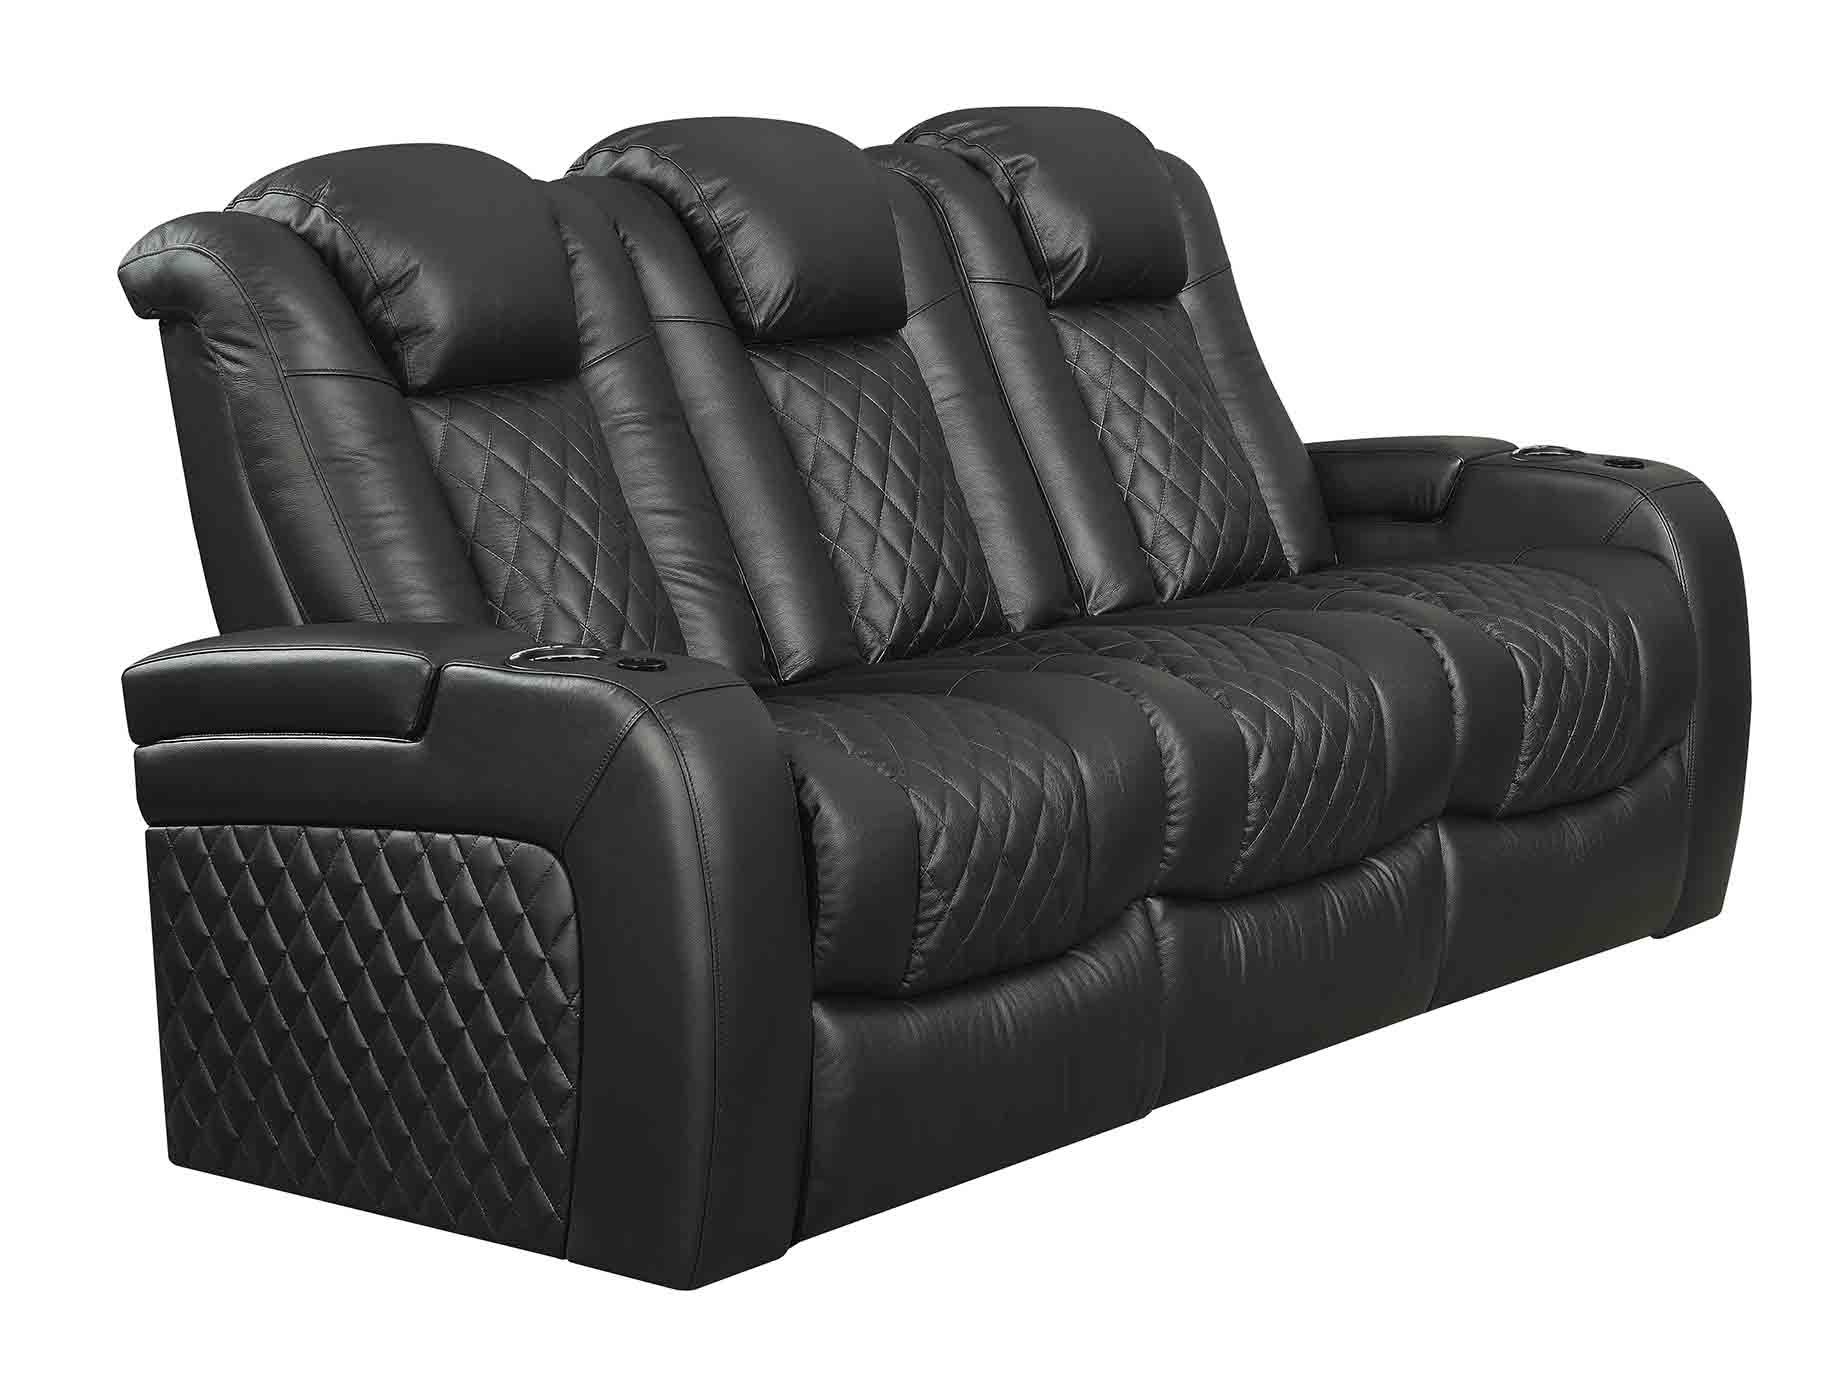 212627982 Racer 2 Sofa In Black